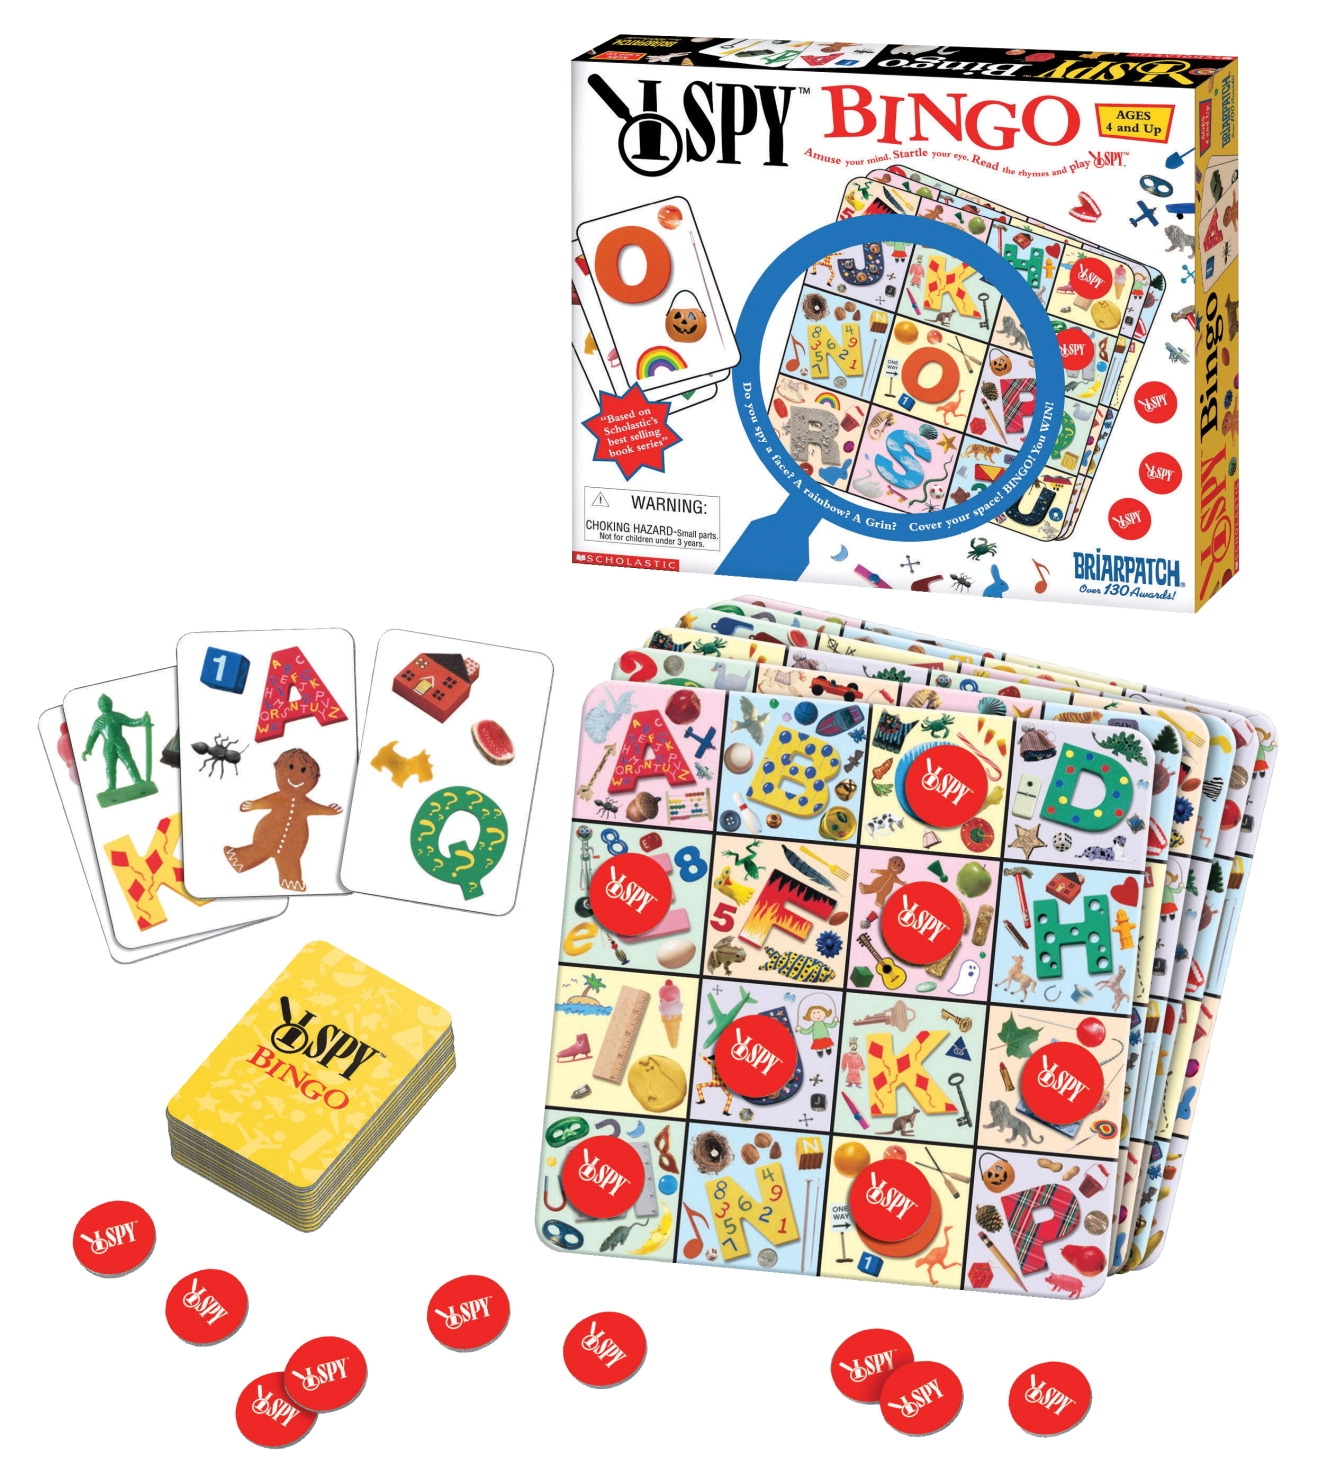 Toys Activity Toys Ball & Cup Games - 077486 - Ispy Bingo Game 077486